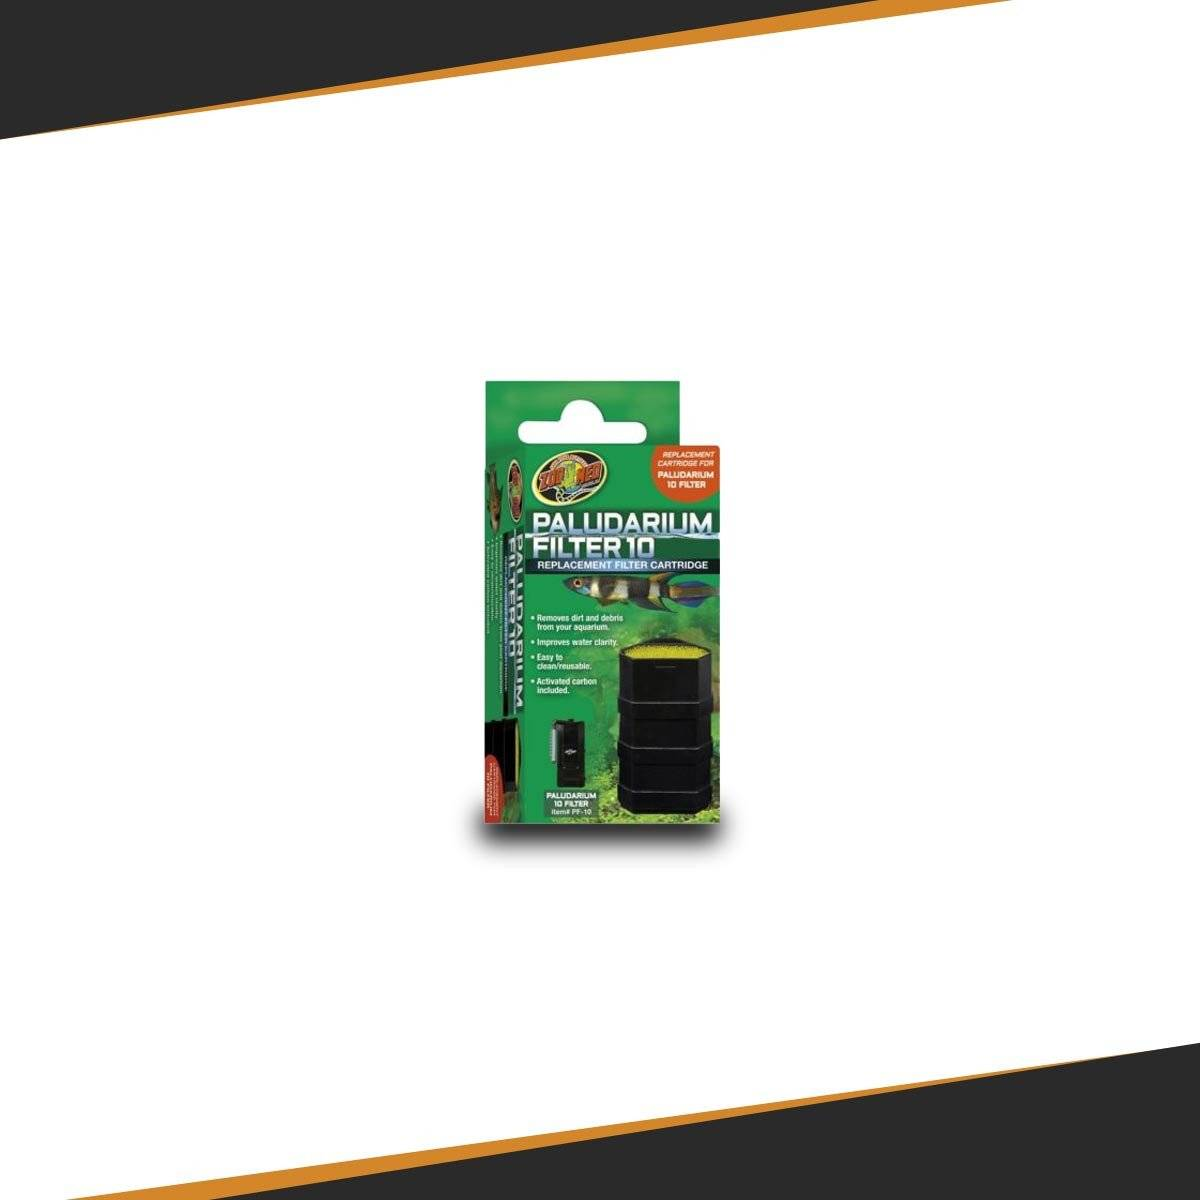 Pack complet pour culture 80cm x 80cm avec SpectraPANEL X320 - Pack culture led horticole